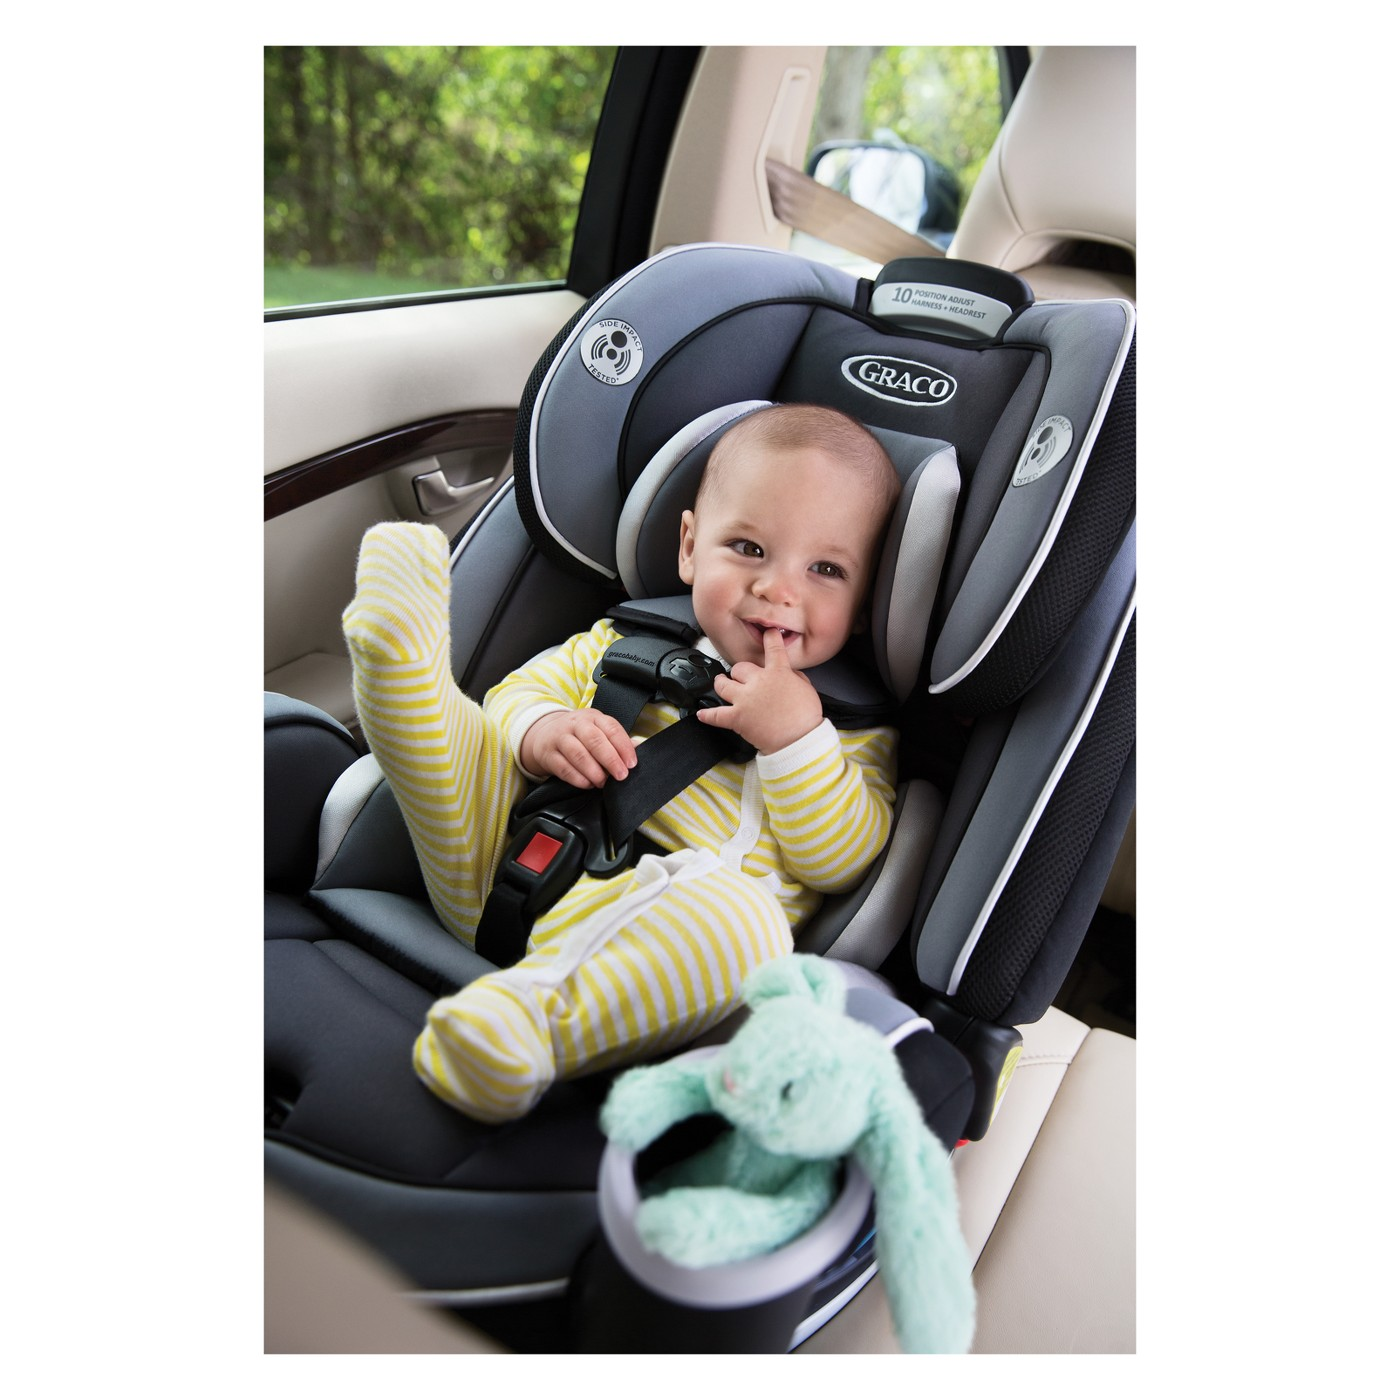 Baby Car Seats At Target Kids Deals Graco 4ever All In One Convertible Car Seat